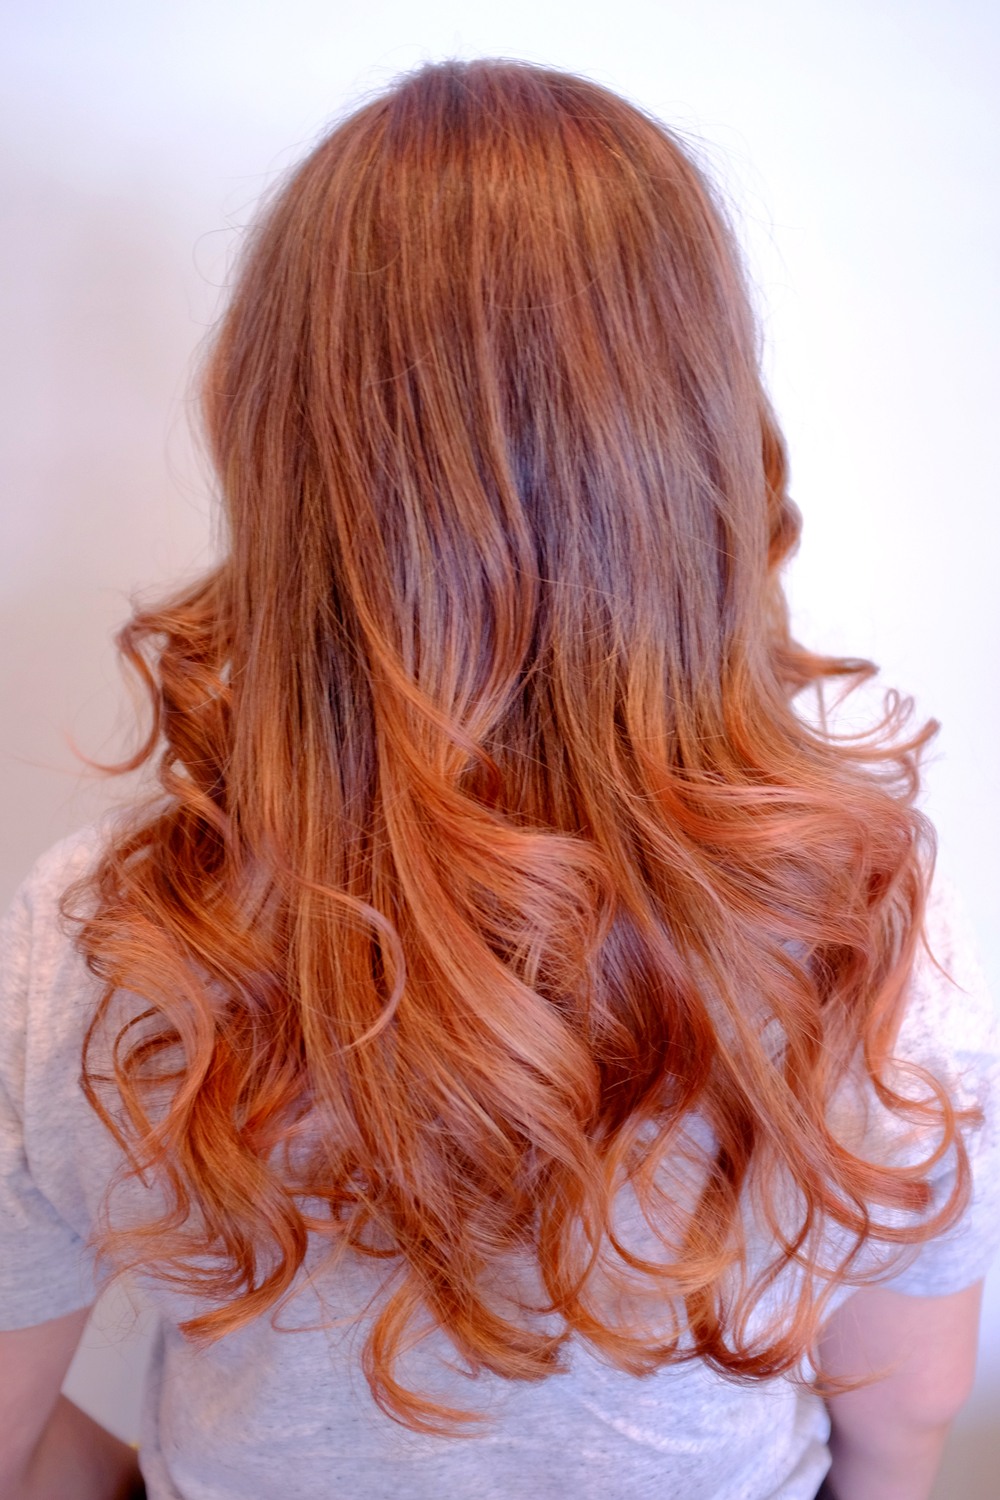 hair by rebecca louise, rebecca louise hair, hairstyle, hair inspo, instahair, ombre, rose gold hair, hair trend, corrimal east hair, sydney hair, sydney blogger, blogger, fashion blogger, style, beauty, stylish, sponsored, long hair, hair tips, makeup, sydney hairdresser, hairdresser